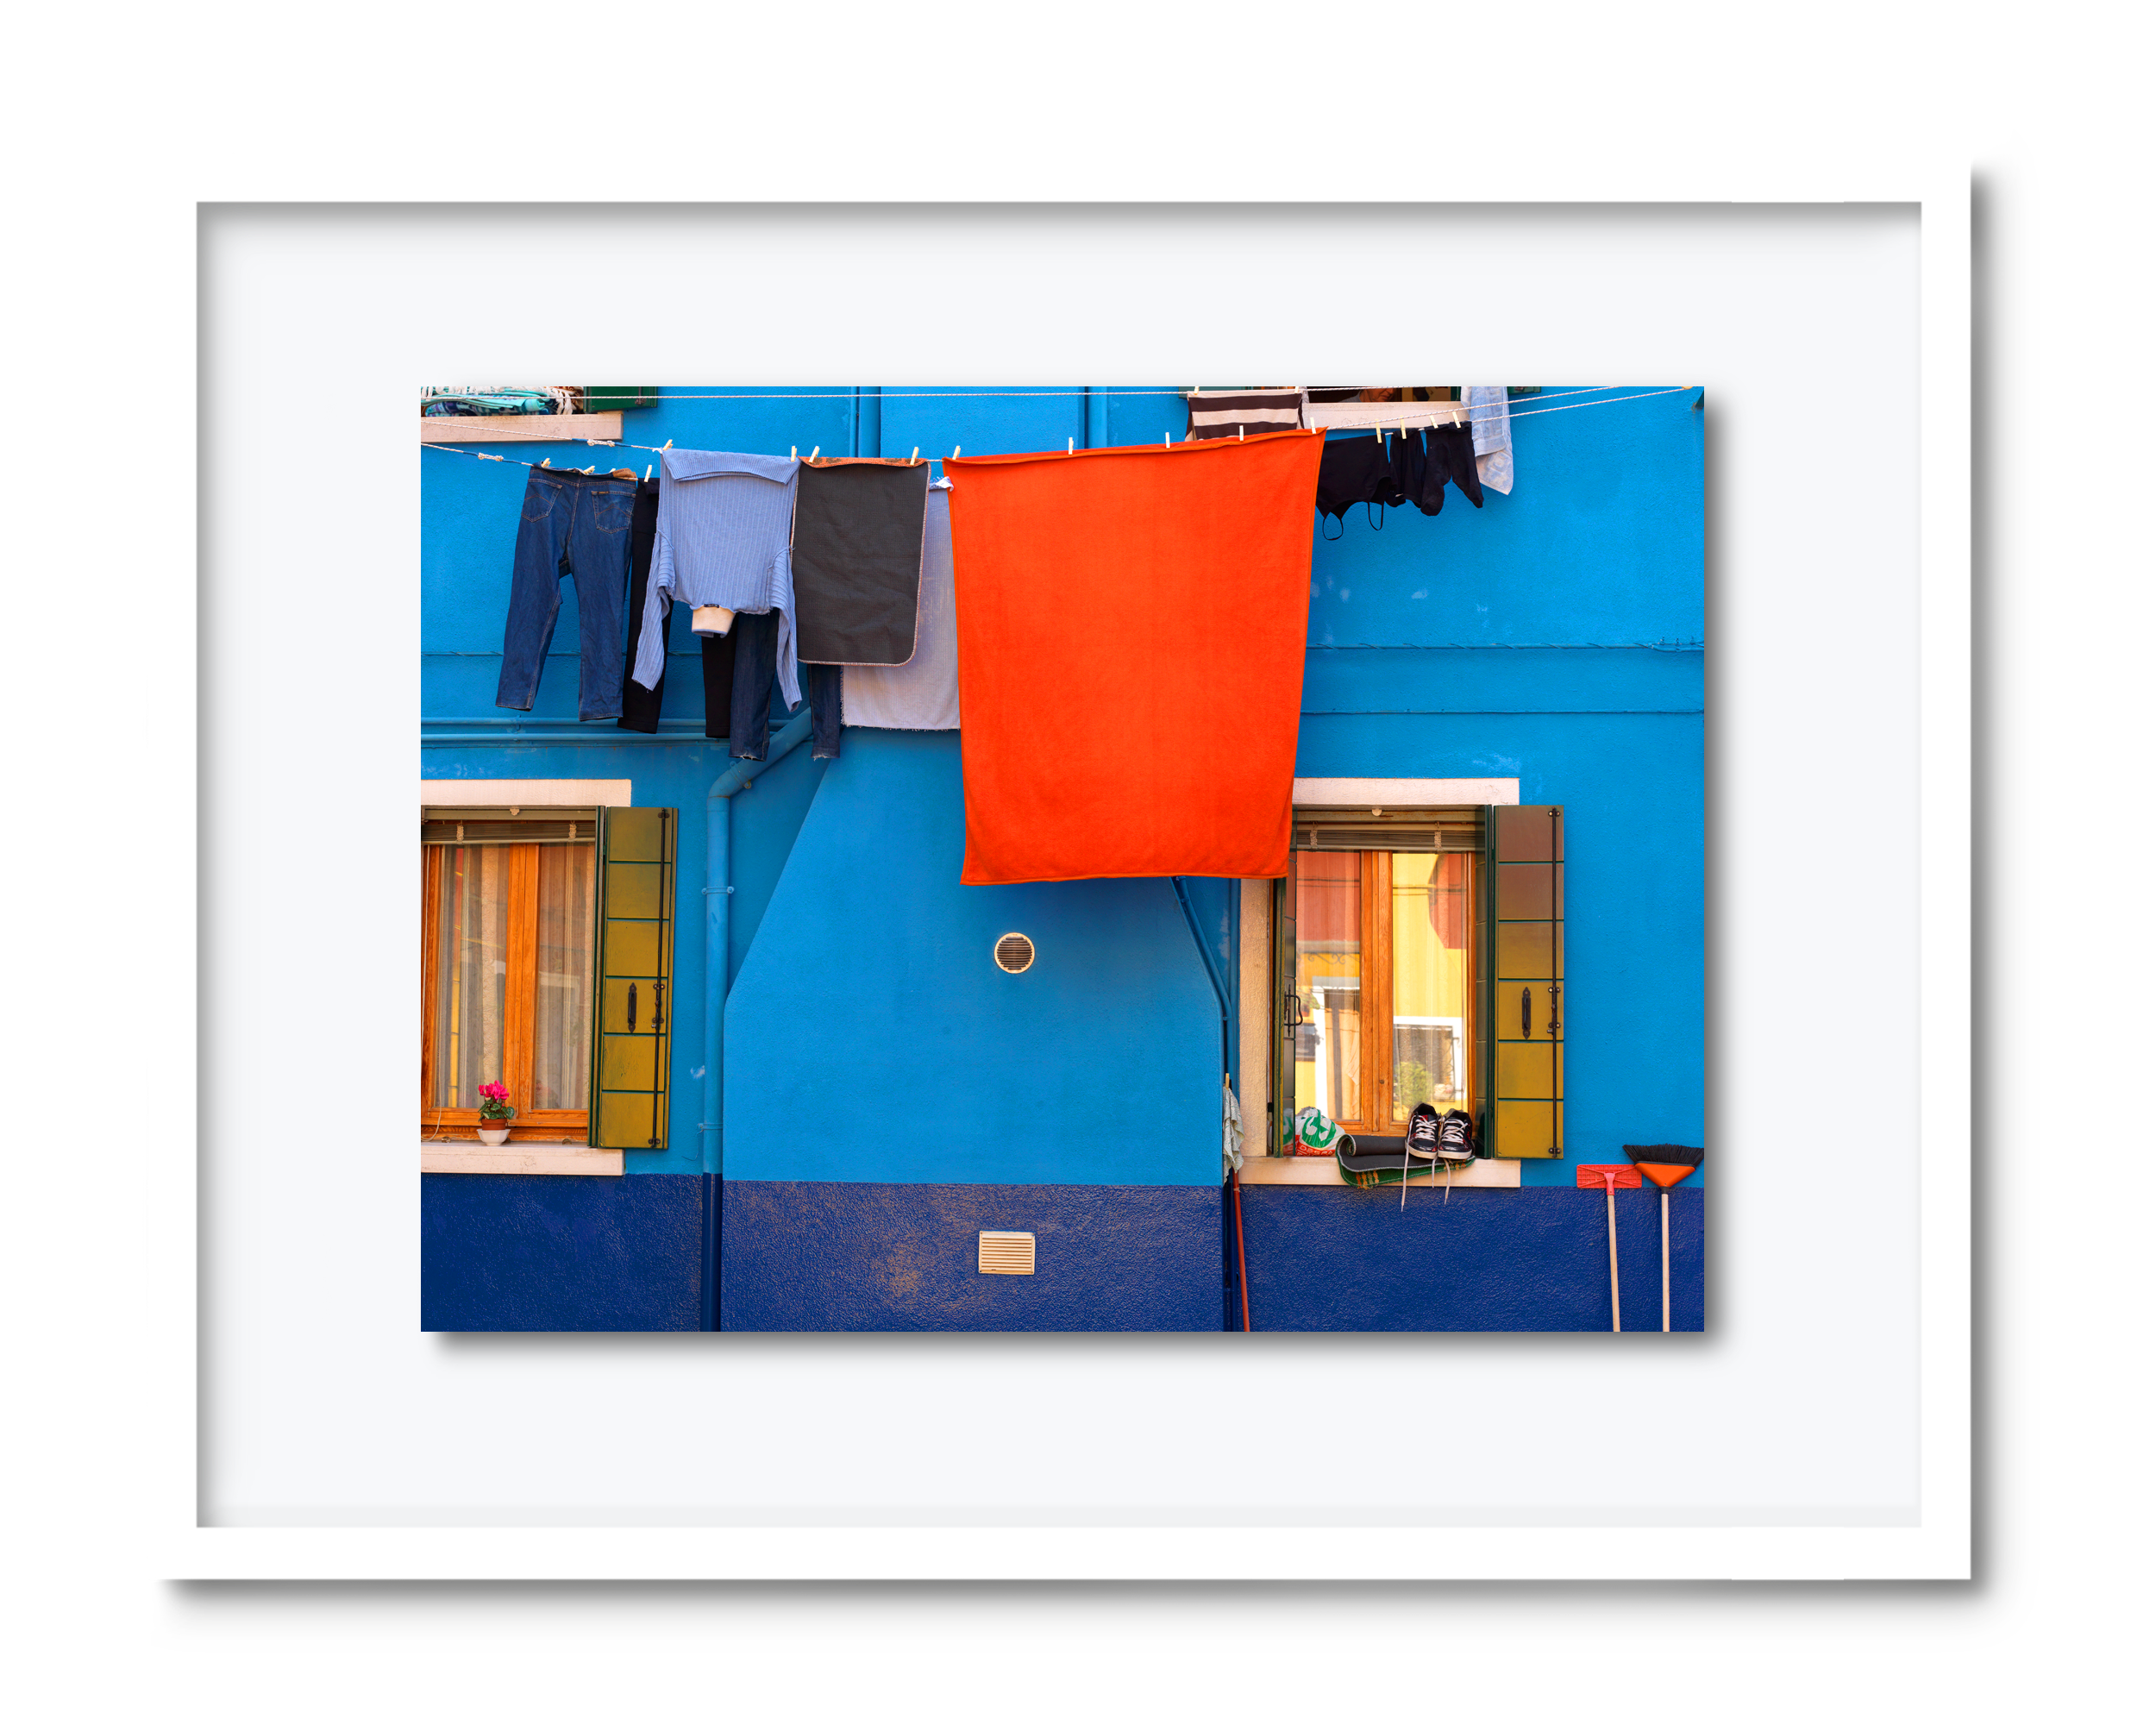 10.david-pearce-colored-building-venice4.png